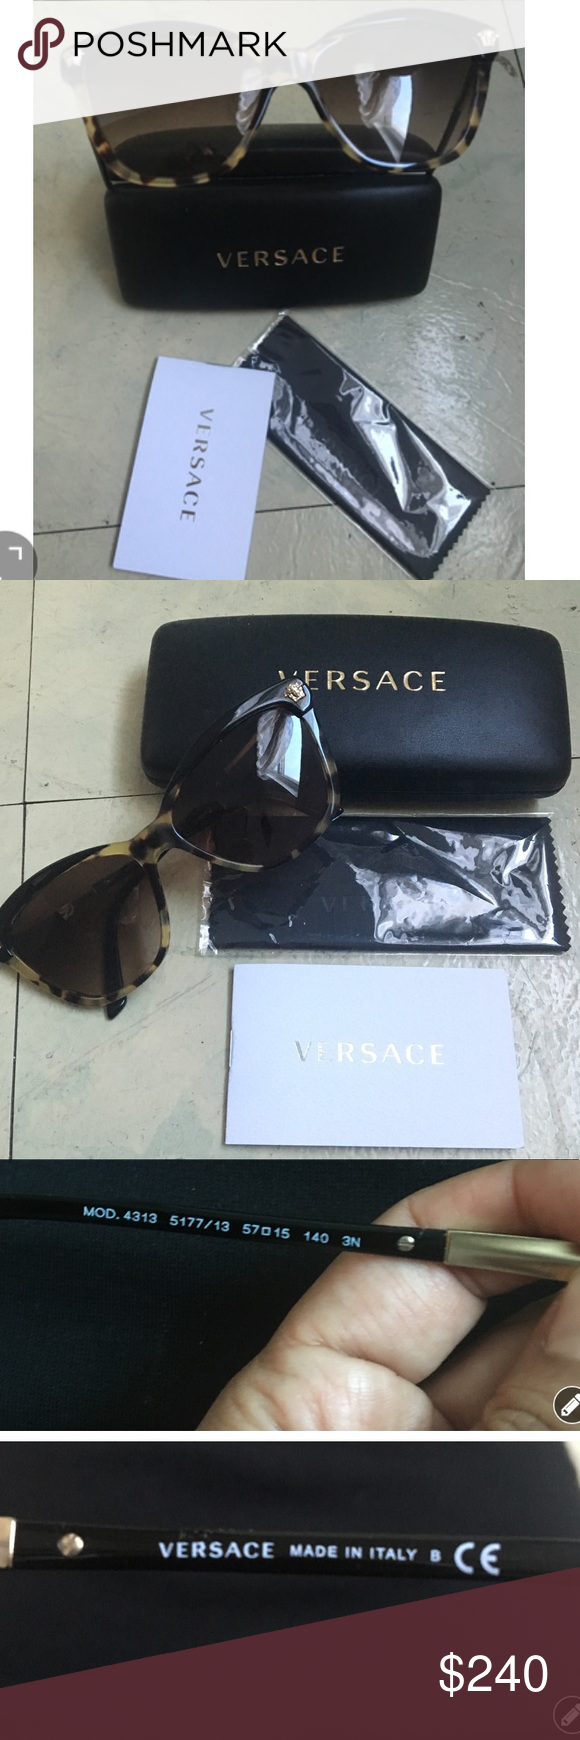 d4401270efaf8 ✨VERSACE AUTHENTIC SUNGLASSES ✨ New Versace VE 4313 5177 13 Butterfly  Sunglasses Black Havana Brown Gradient Lens. Available with a case and a  cloth ...